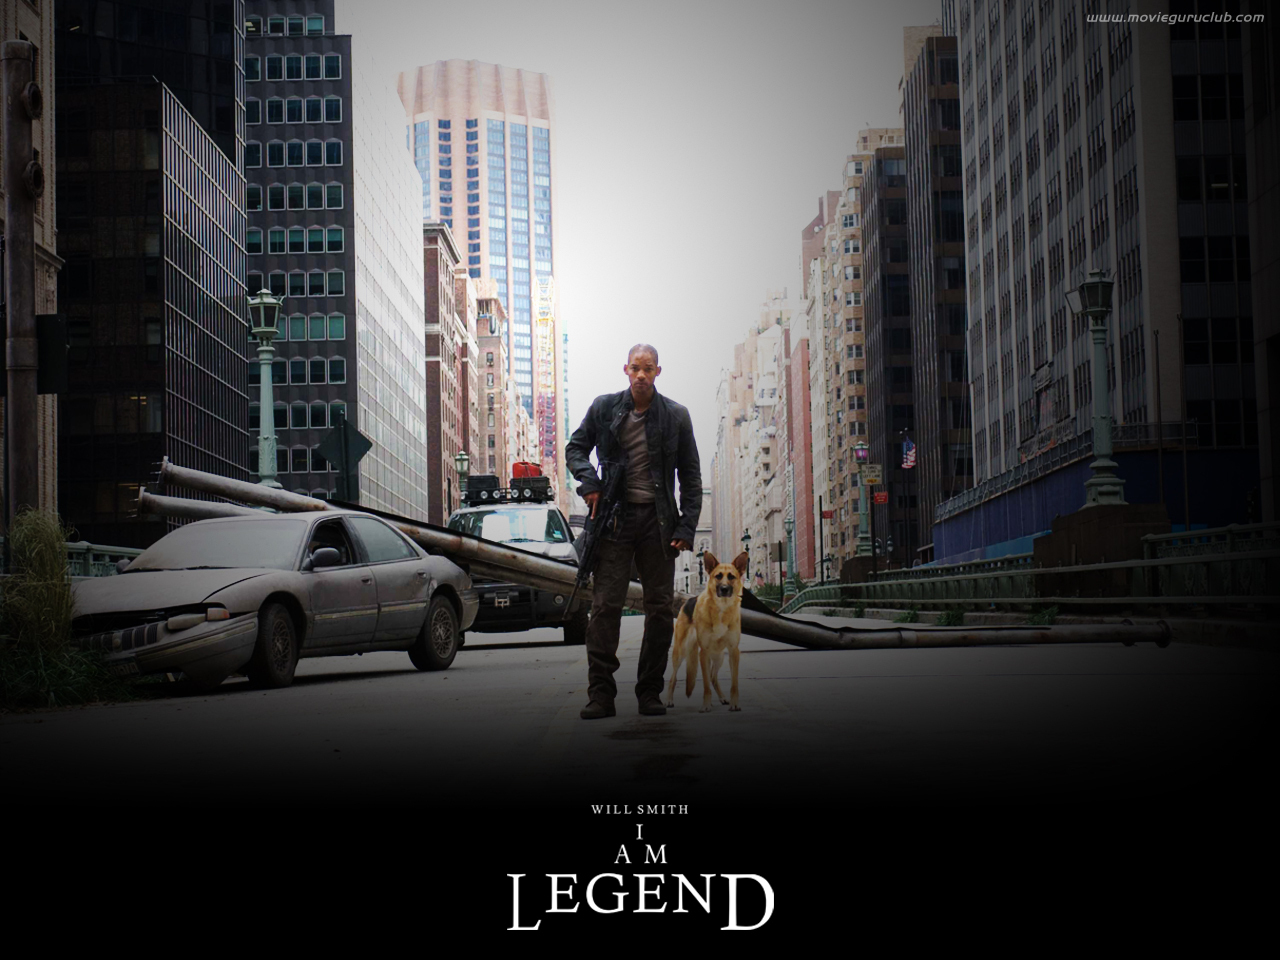 I Am Legend images iamlegend HD wallpaper and background photos